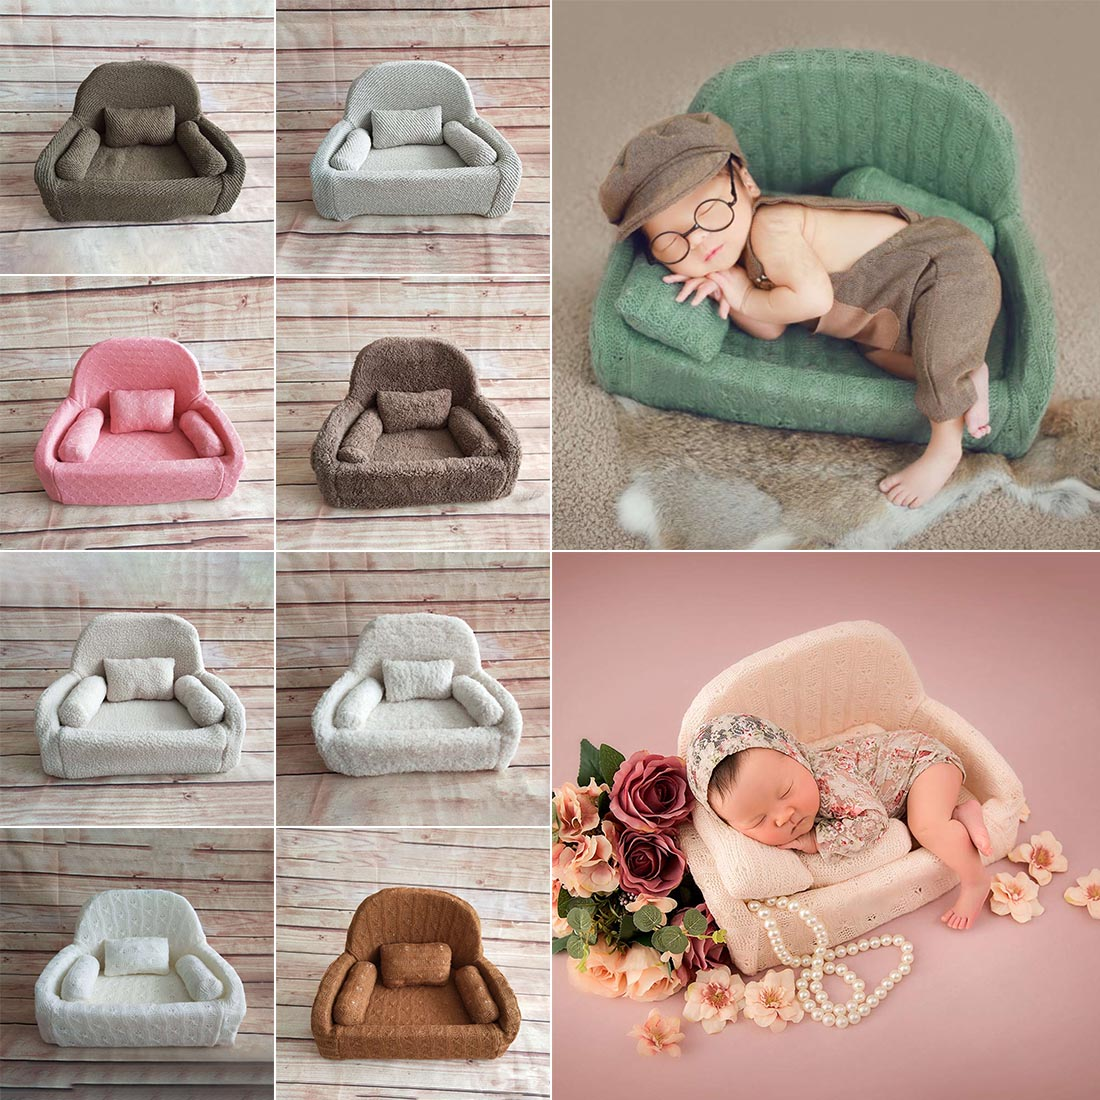 Infant Studio Shooting Props Newborn Photography Props Mini Posing Sofa Pillow Set Chair Decoration Baby Photography Accessories